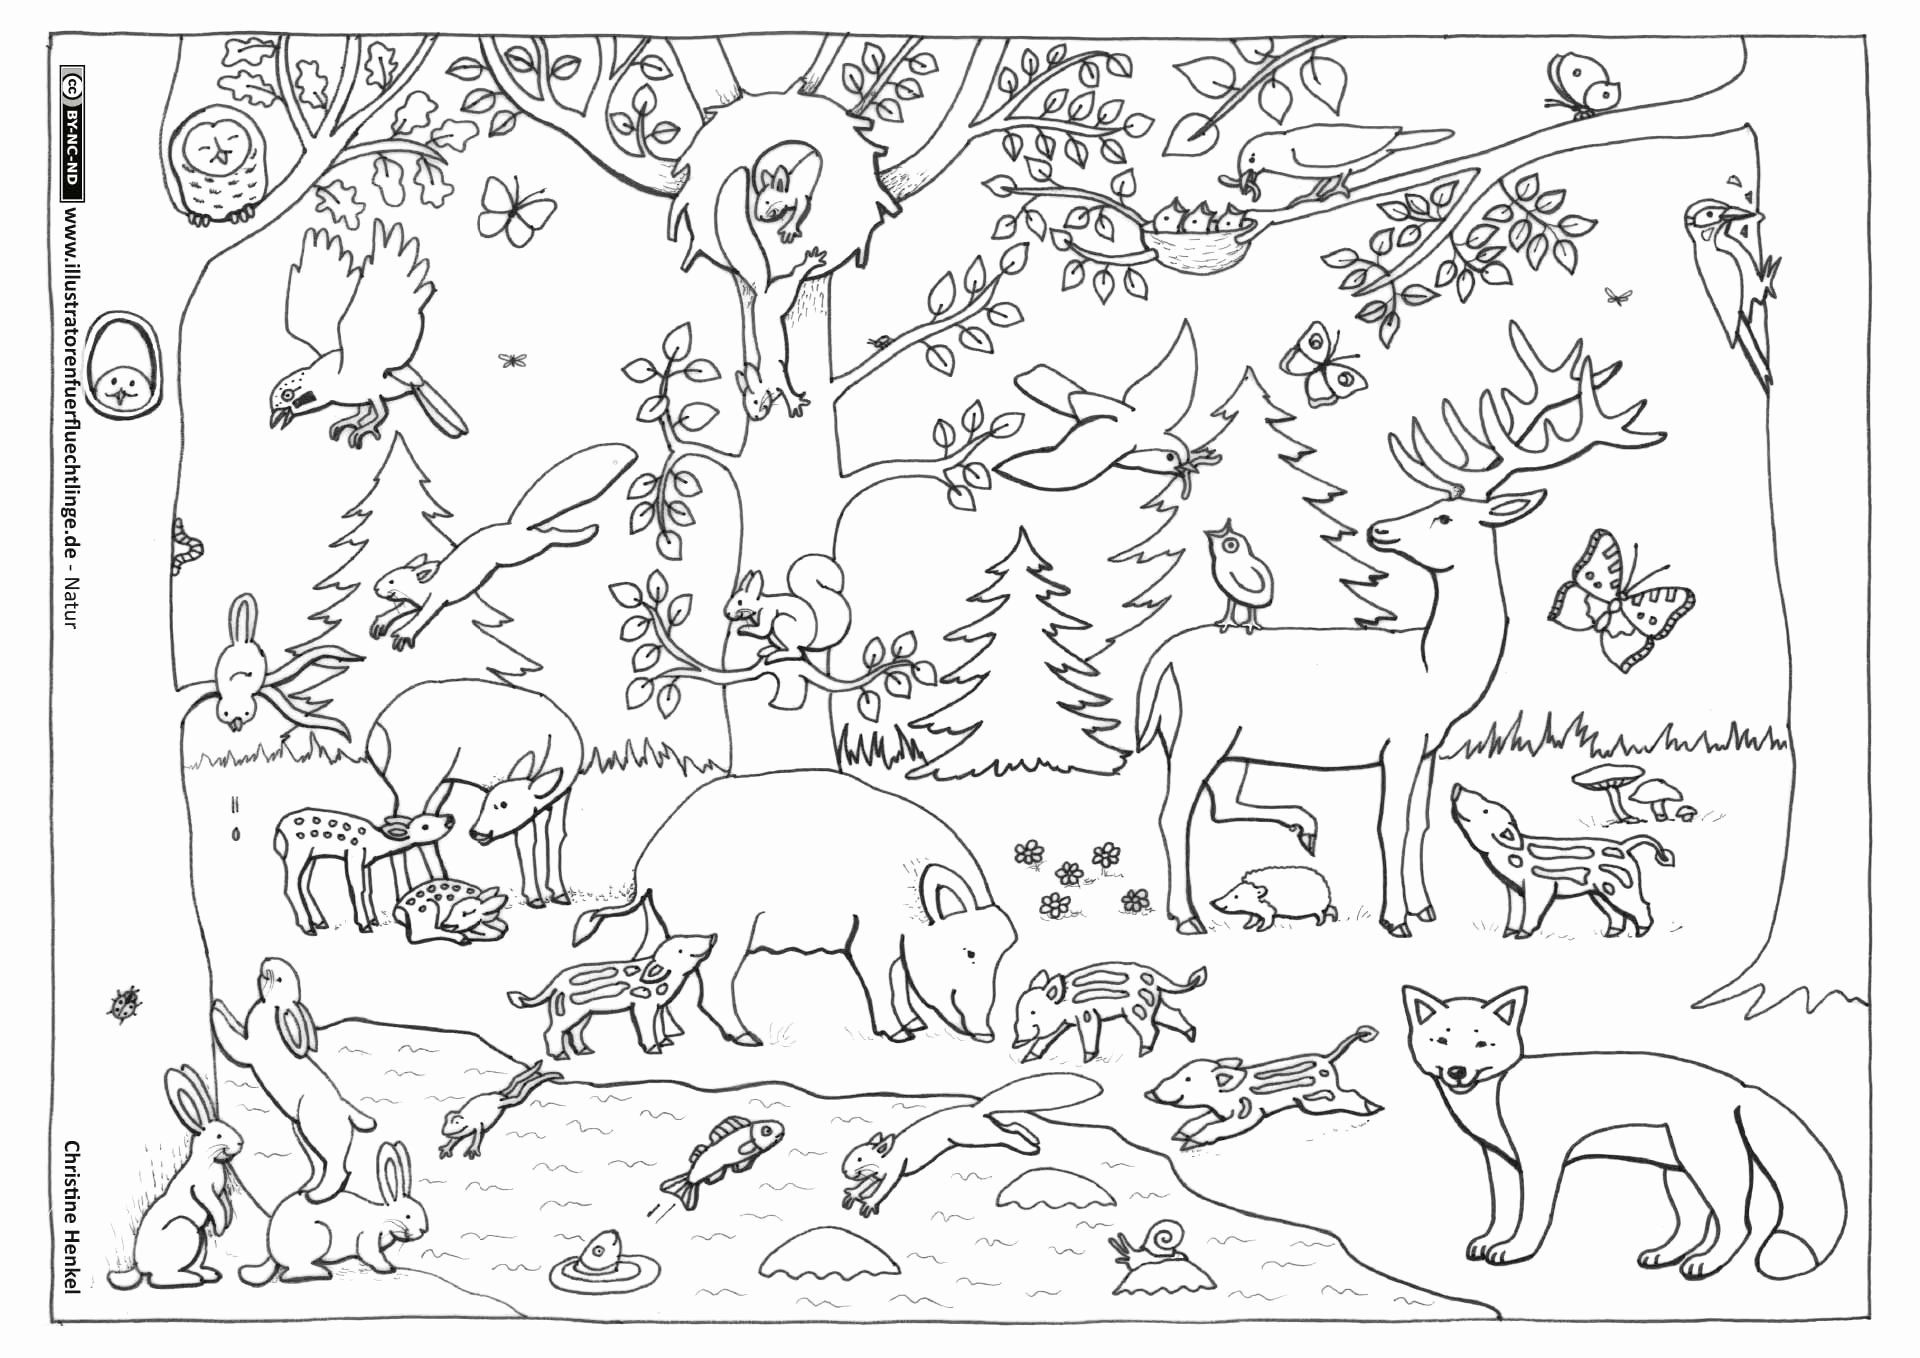 Pin By Deimantė Vanagaitė On Coloring Pages Autumn Animals Coloring Pages Animal Coloring Pages [ 1358 x 1920 Pixel ]